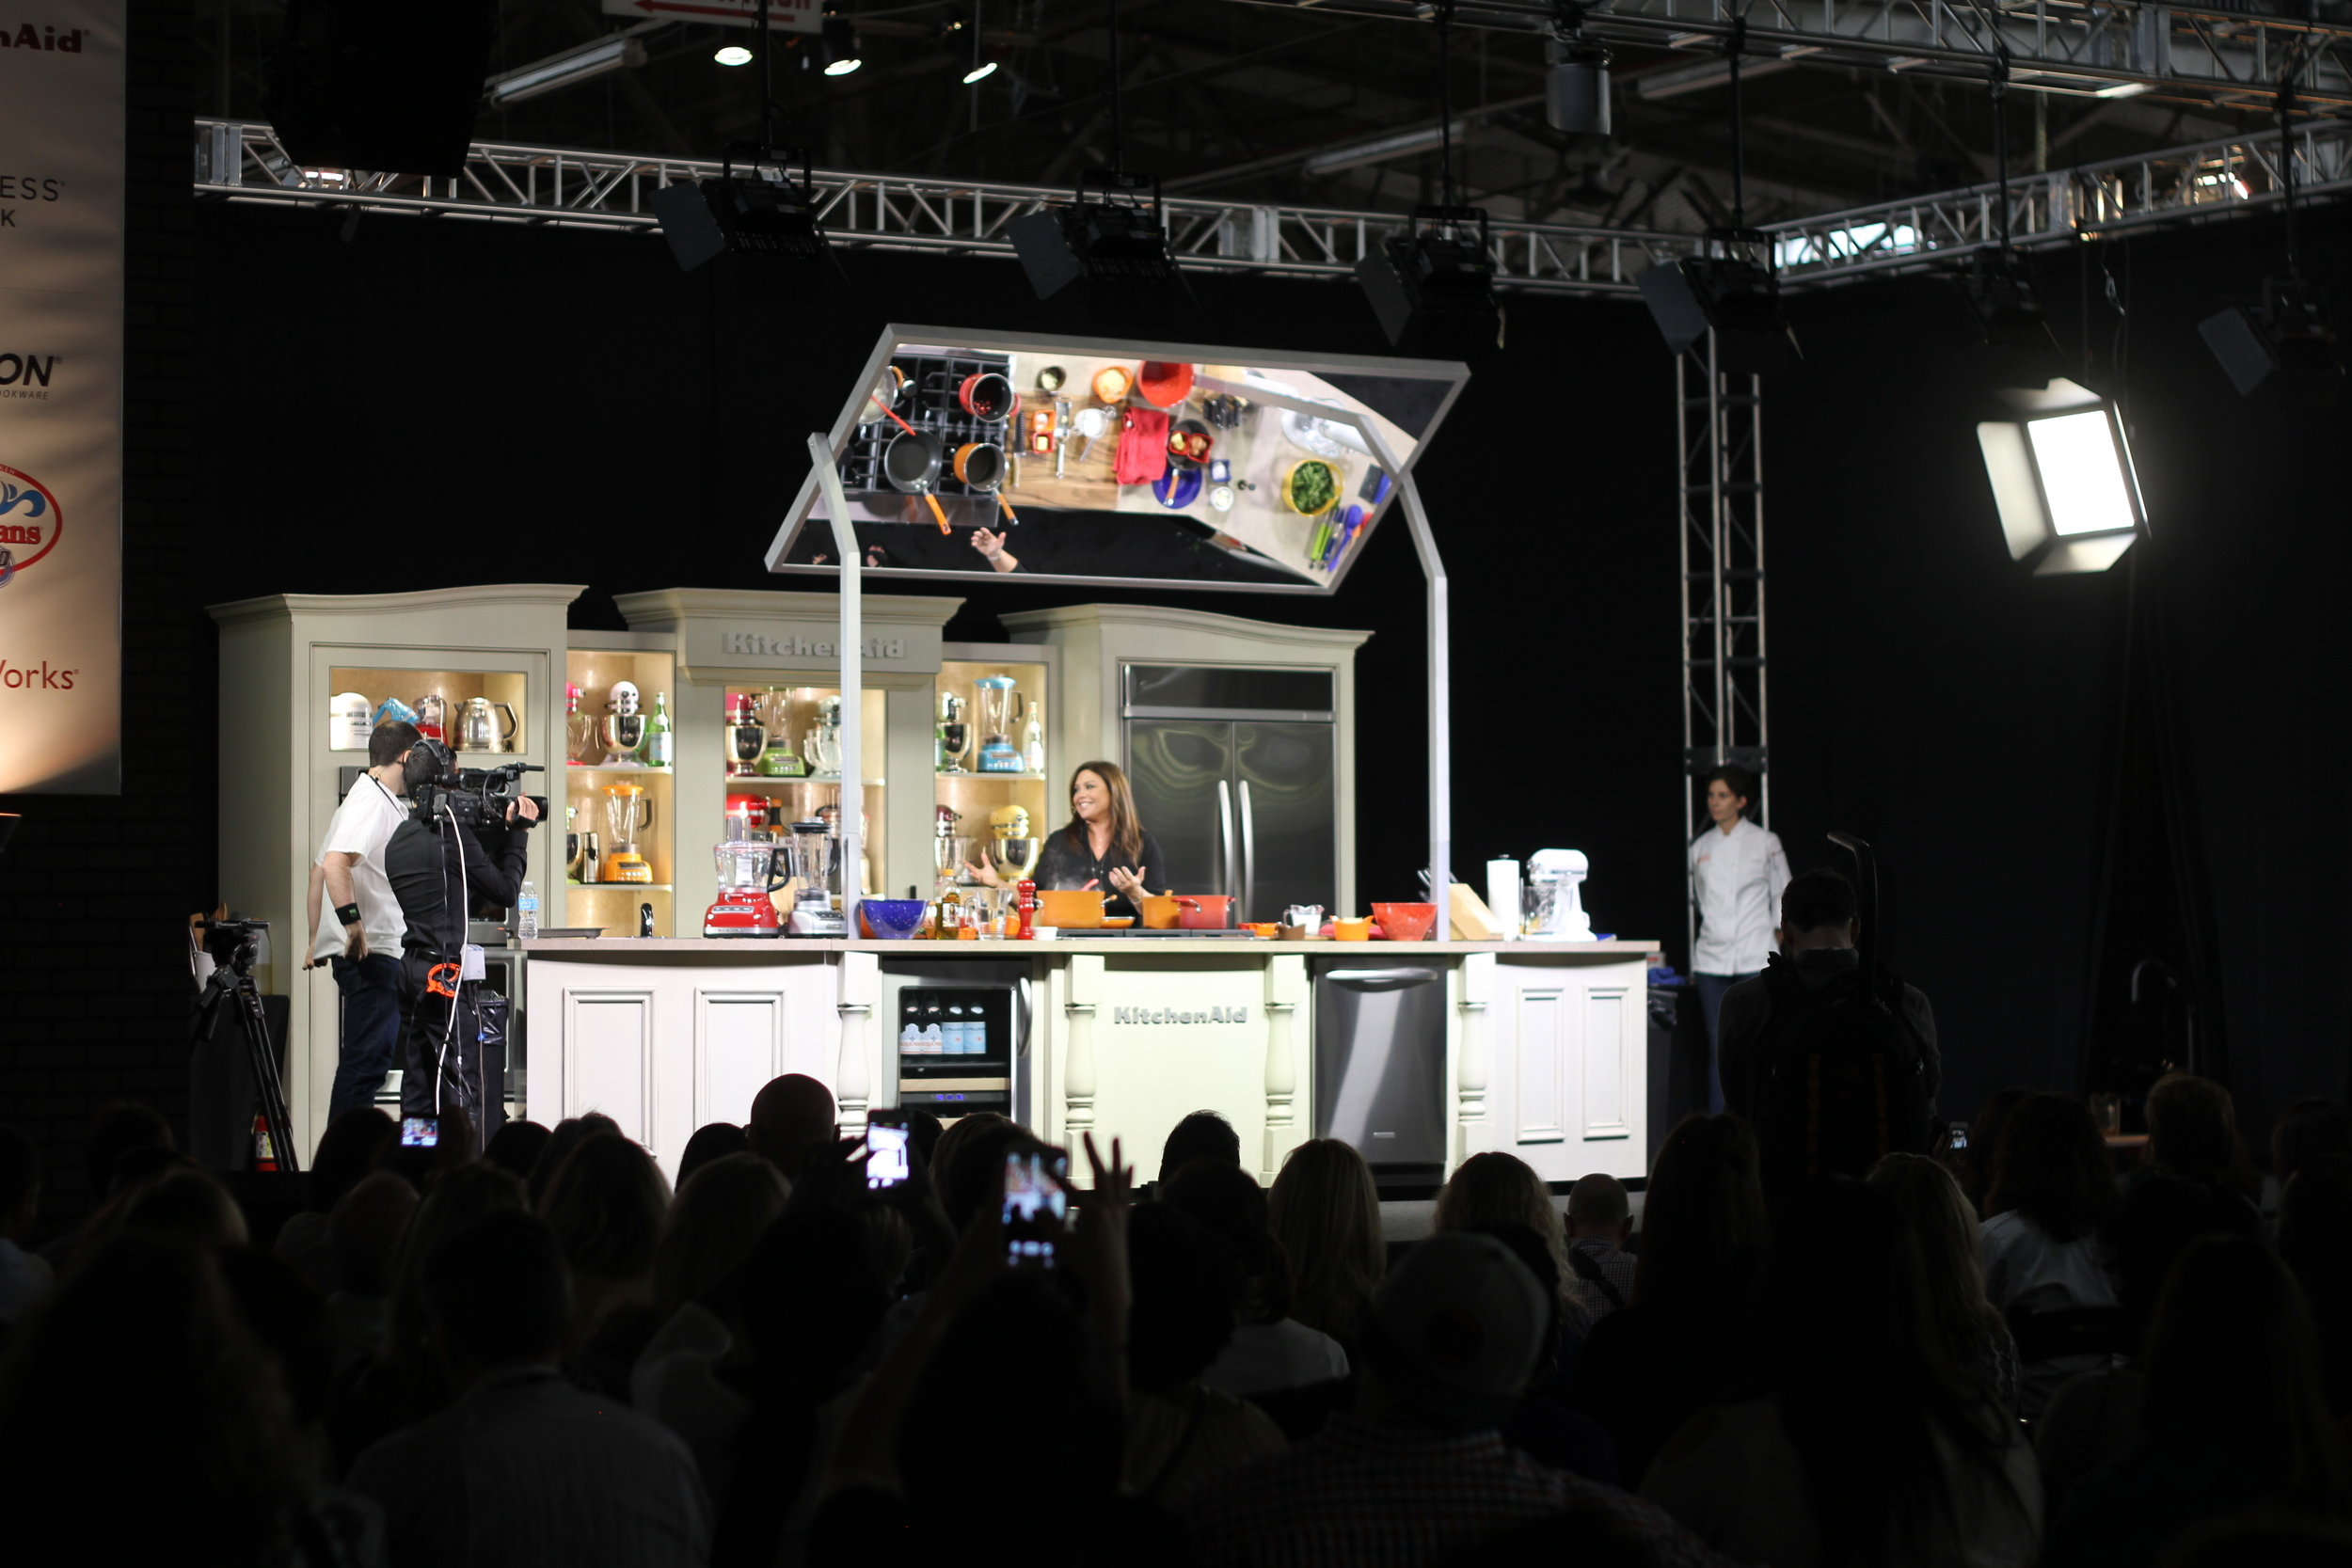 The crowds poured in to watch Rachel Ray's cooking demo.